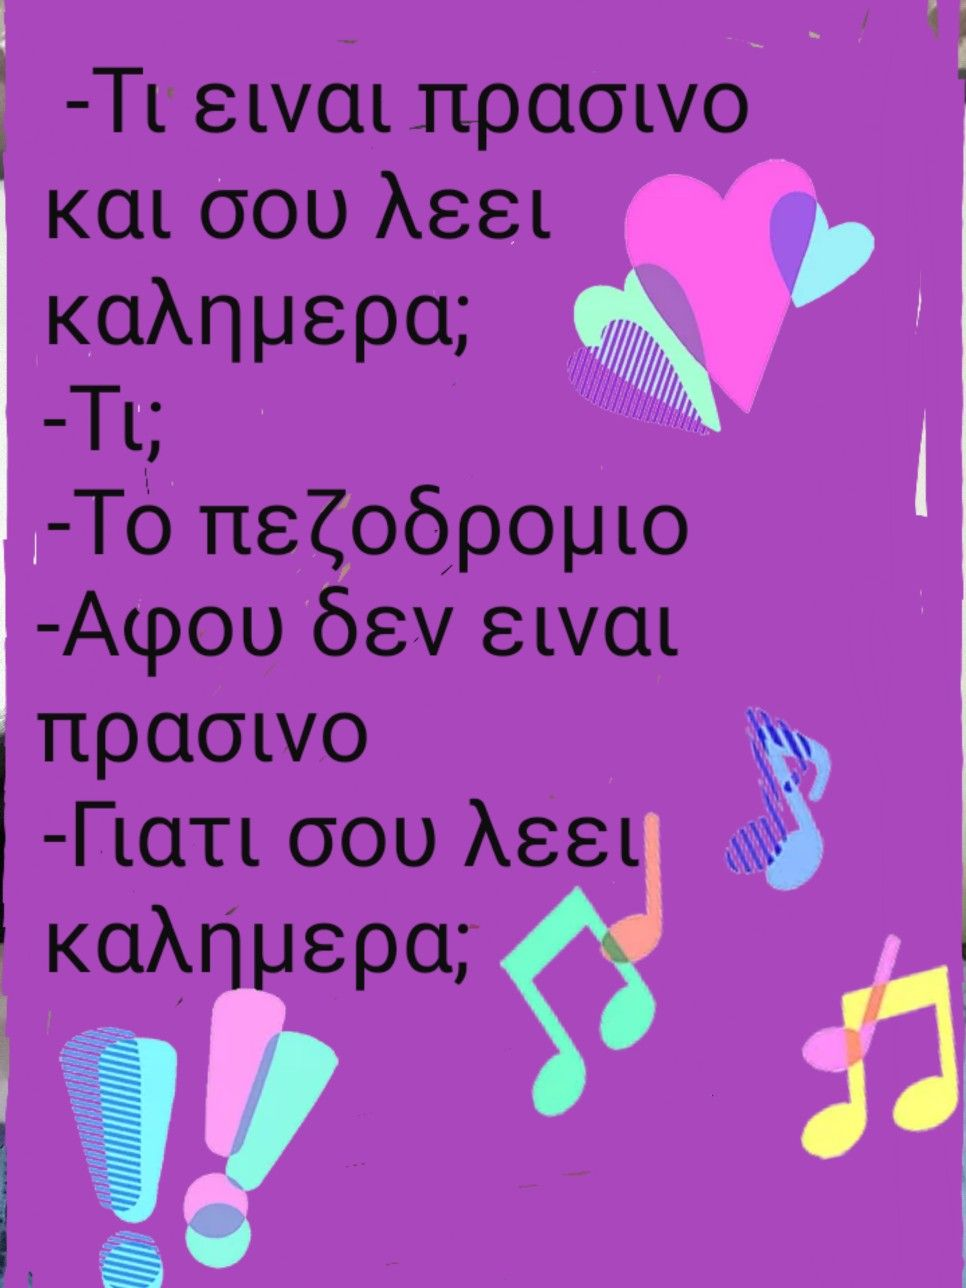 Pin By Michalis Makridakis On Gelio Funny Greek Quotes Funny Quotes Stupid Funny Memes